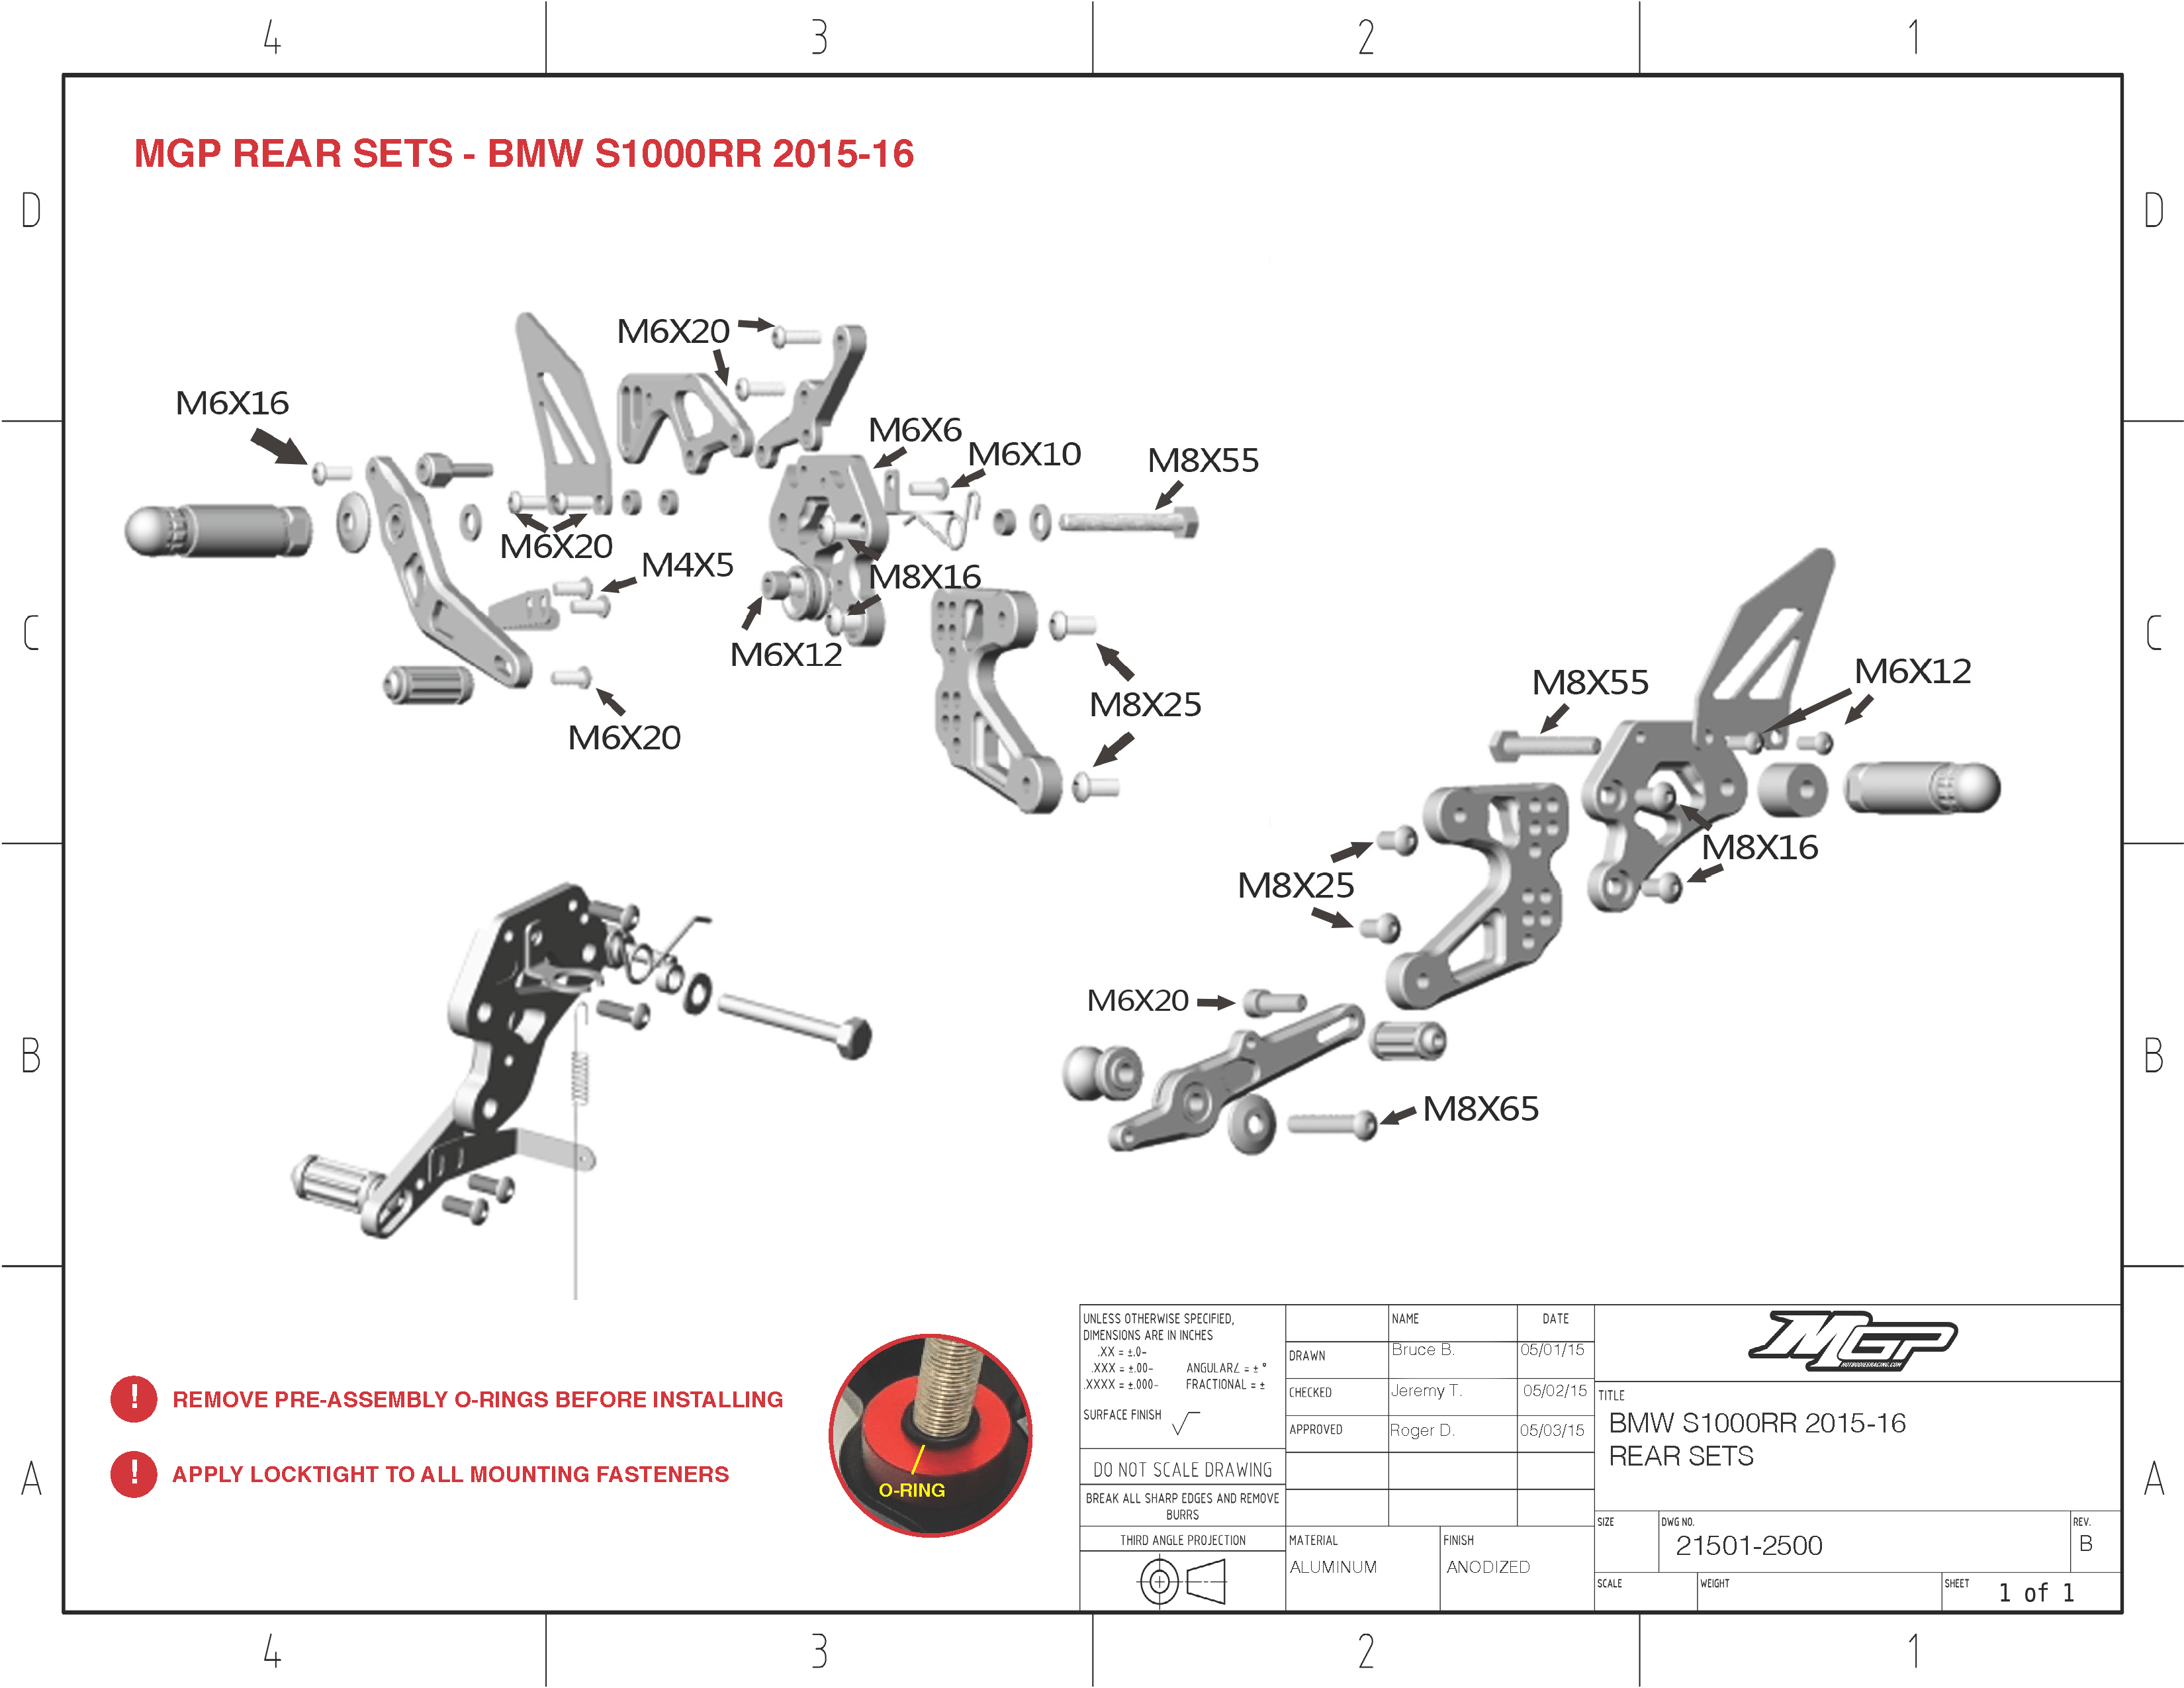 S1000RR 2015-19 & S 1000 R 2019 MGP Rearsets